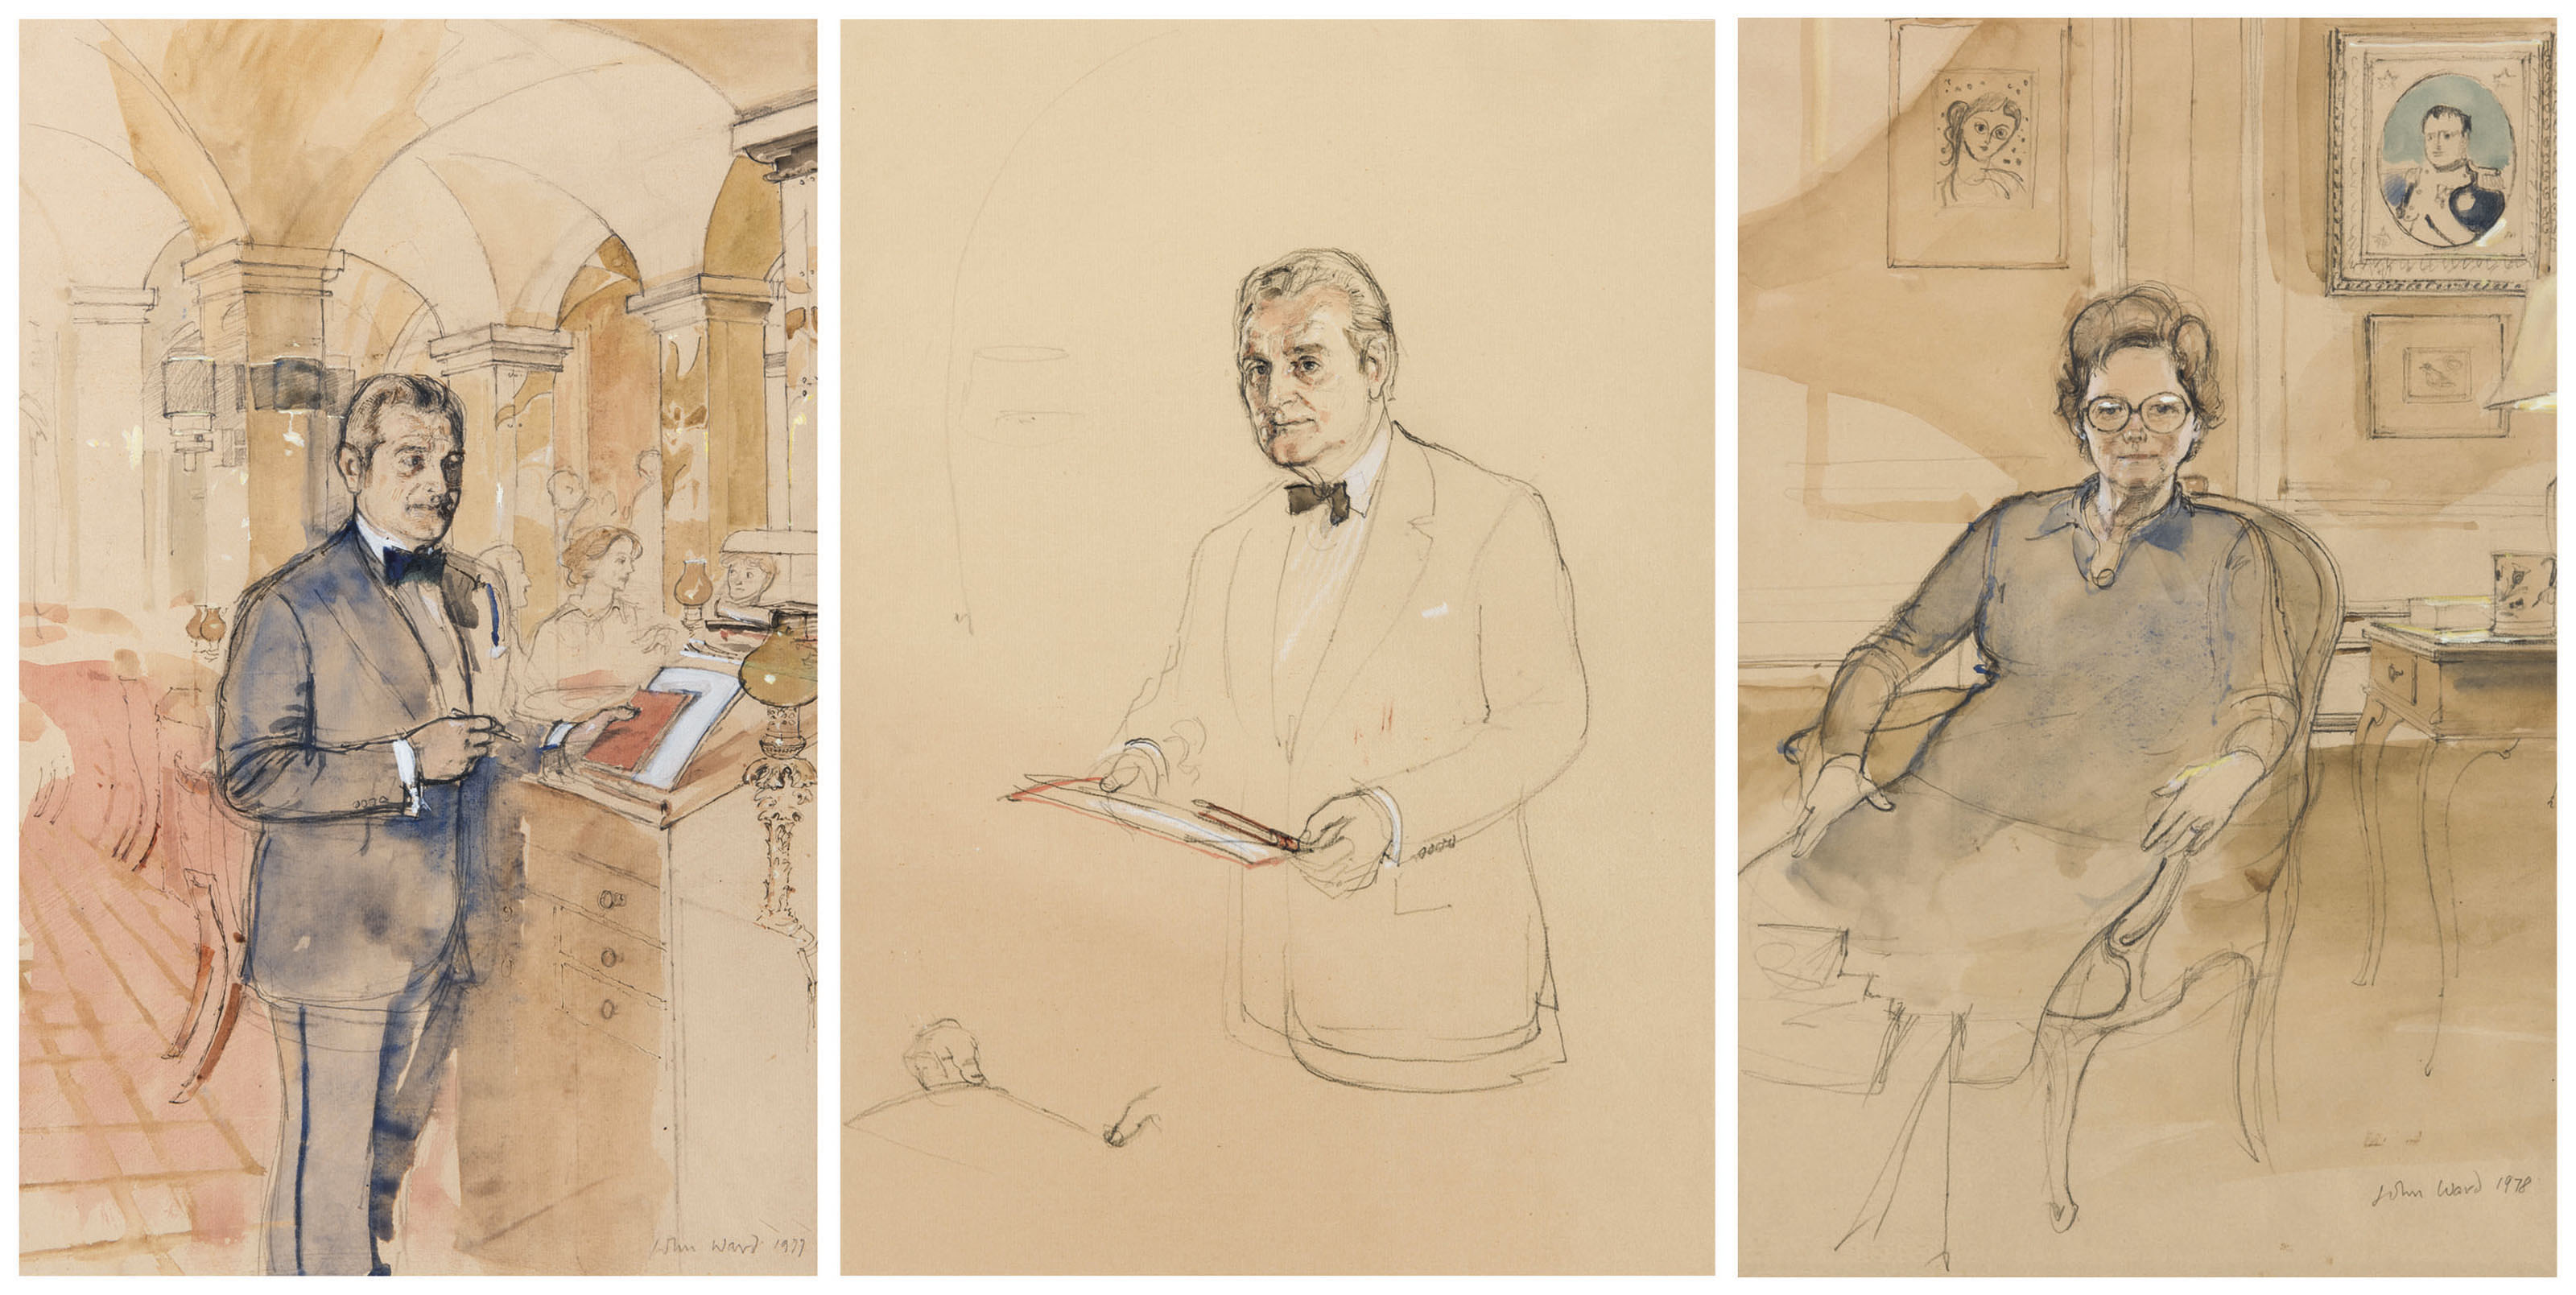 Louis Emanuelli, General Manager and Director 1963-1992 (i); Louis Emanuelli, study for 'The Founder Members of Annabel's' (ii); Mabel James (iii)